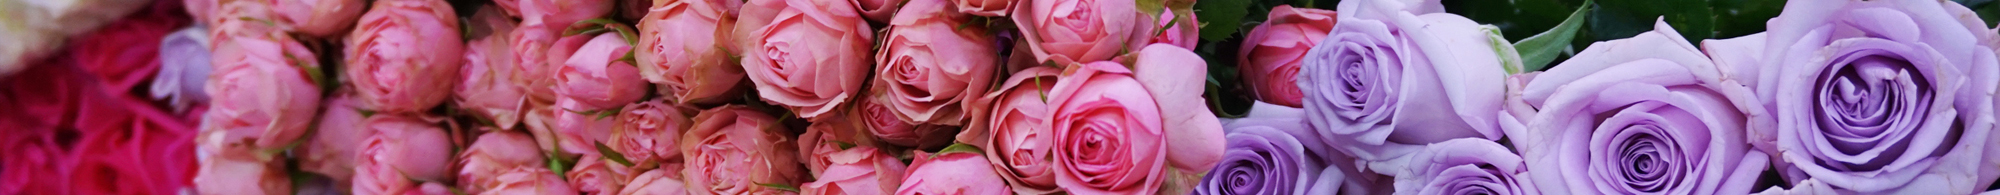 roses stacked up in a flower market